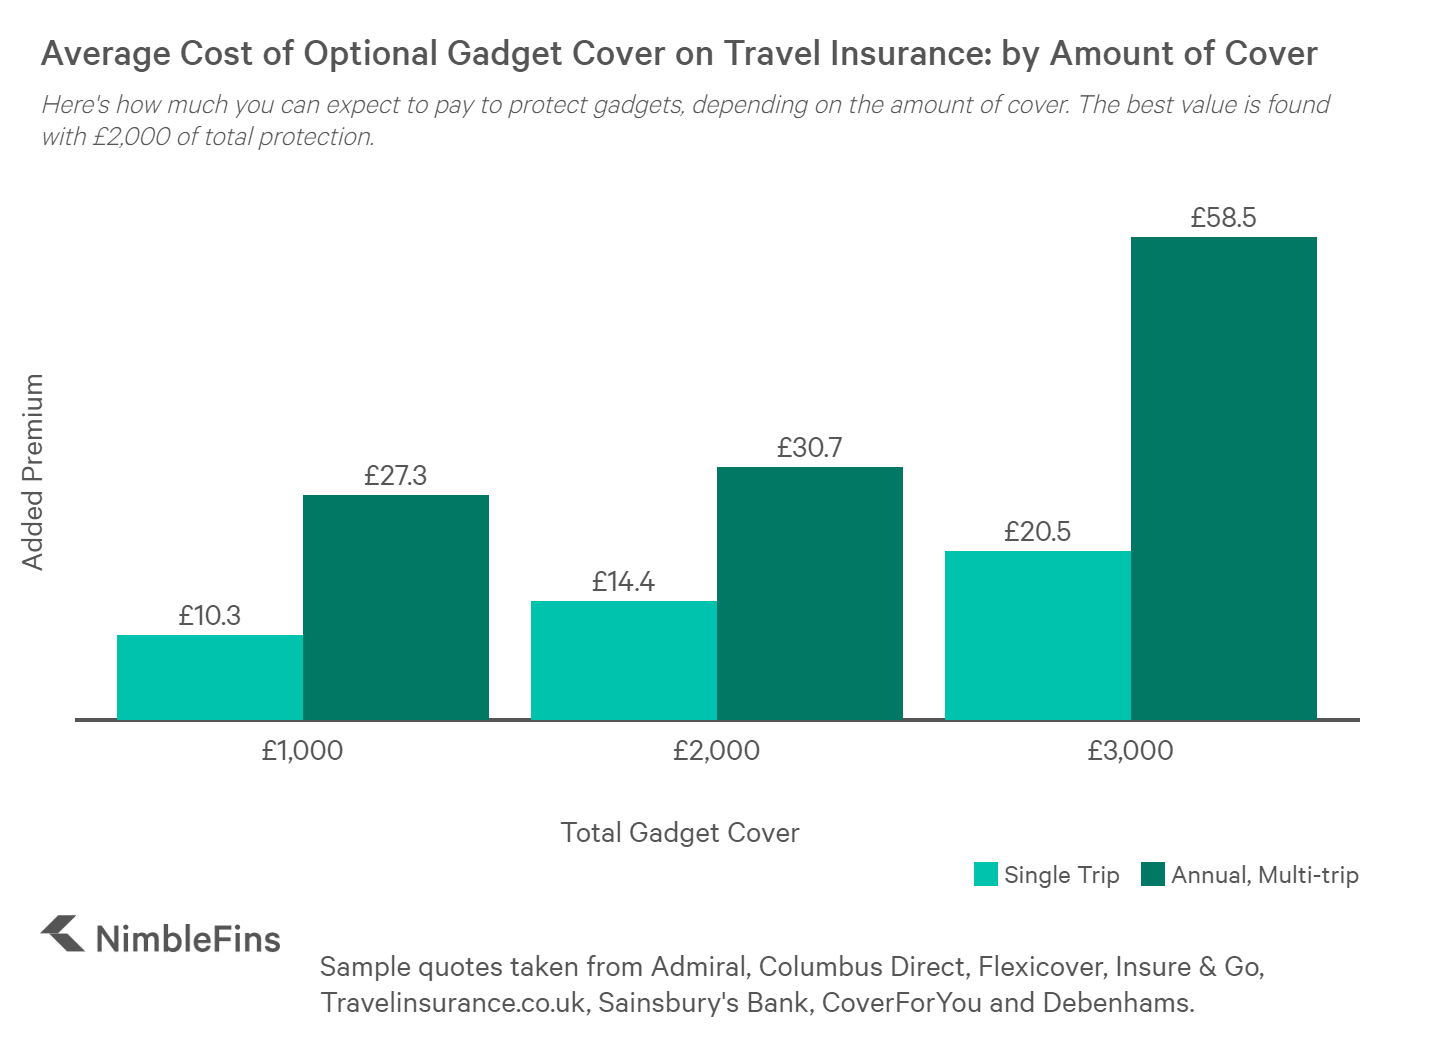 chart showing the cost of optional gadget cover for travel insurance for £1,000, £2,000 and £3,000 of cover, for both Single trip plans and Annual, Multi-trip plans